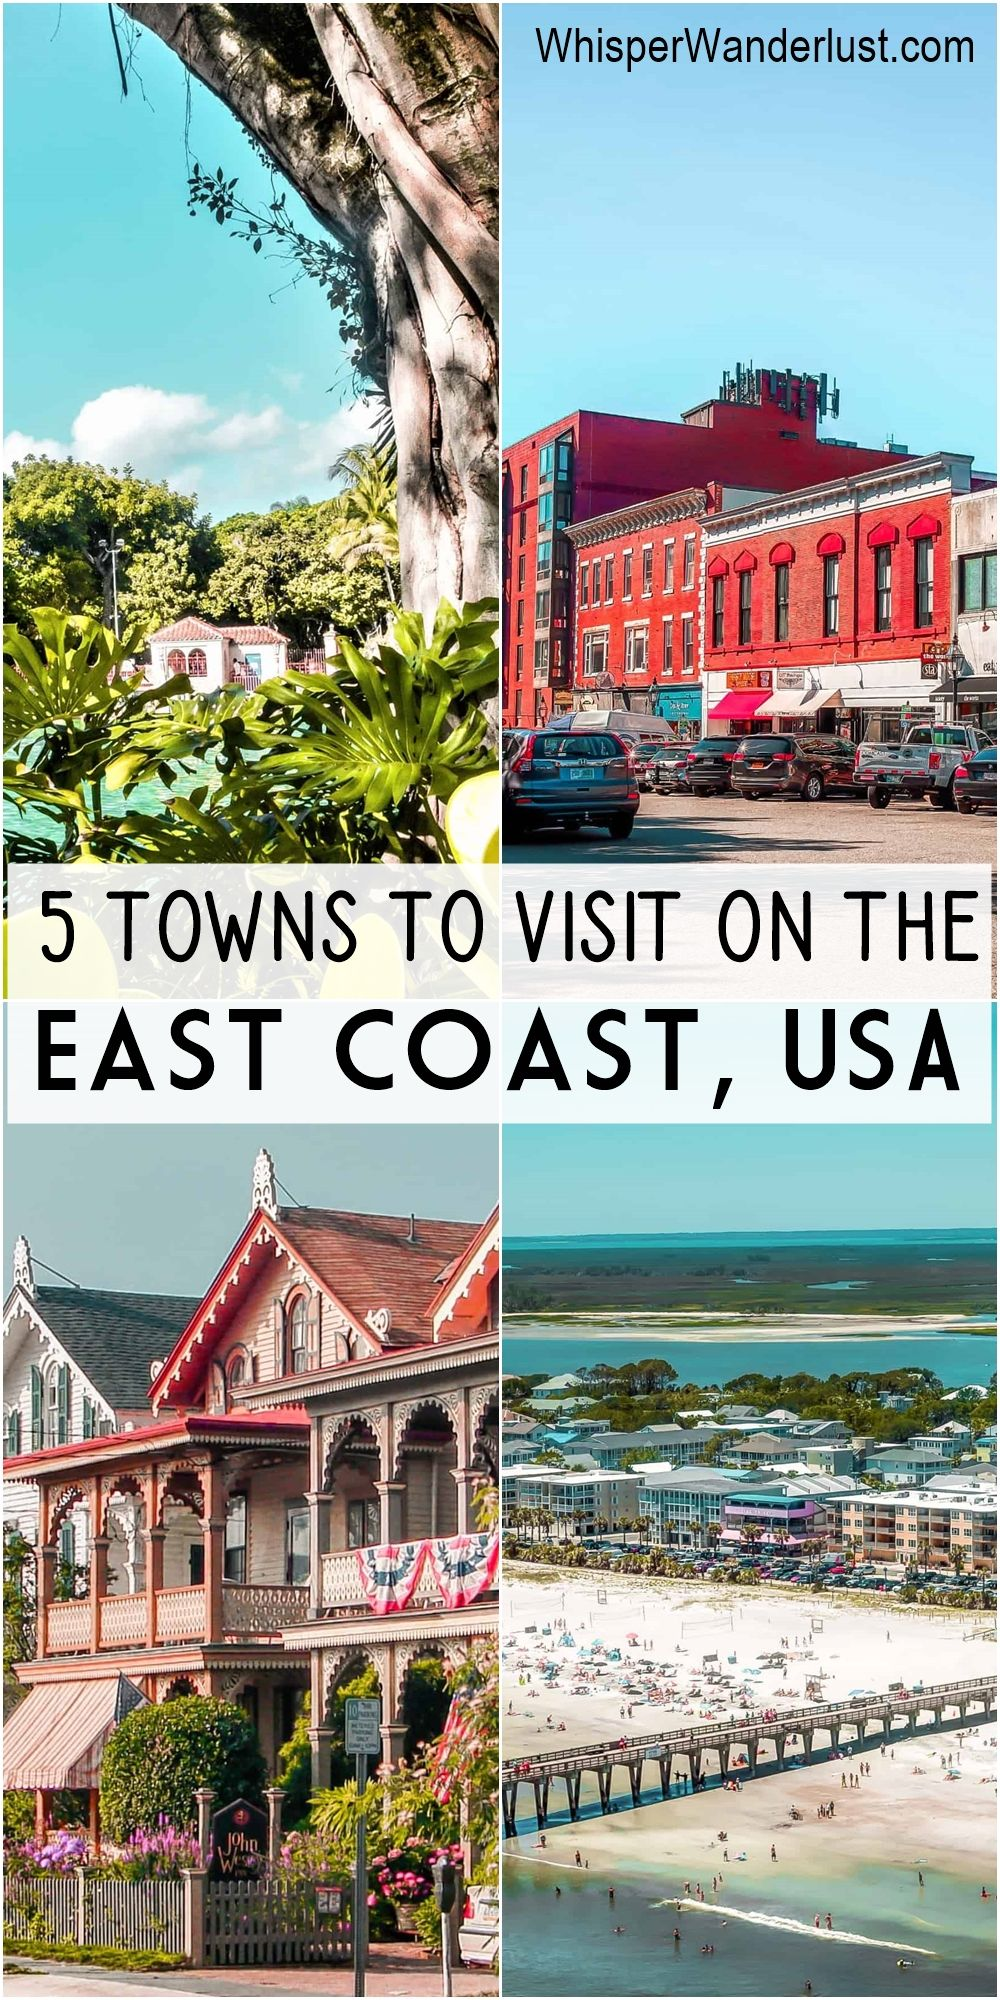 5 Gorgeous Towns To Visit On The East Coast Usa Whisperwanderlust Com In 2021 East Coast Vacation East Coast Vacation Spots Best Places To Vacation